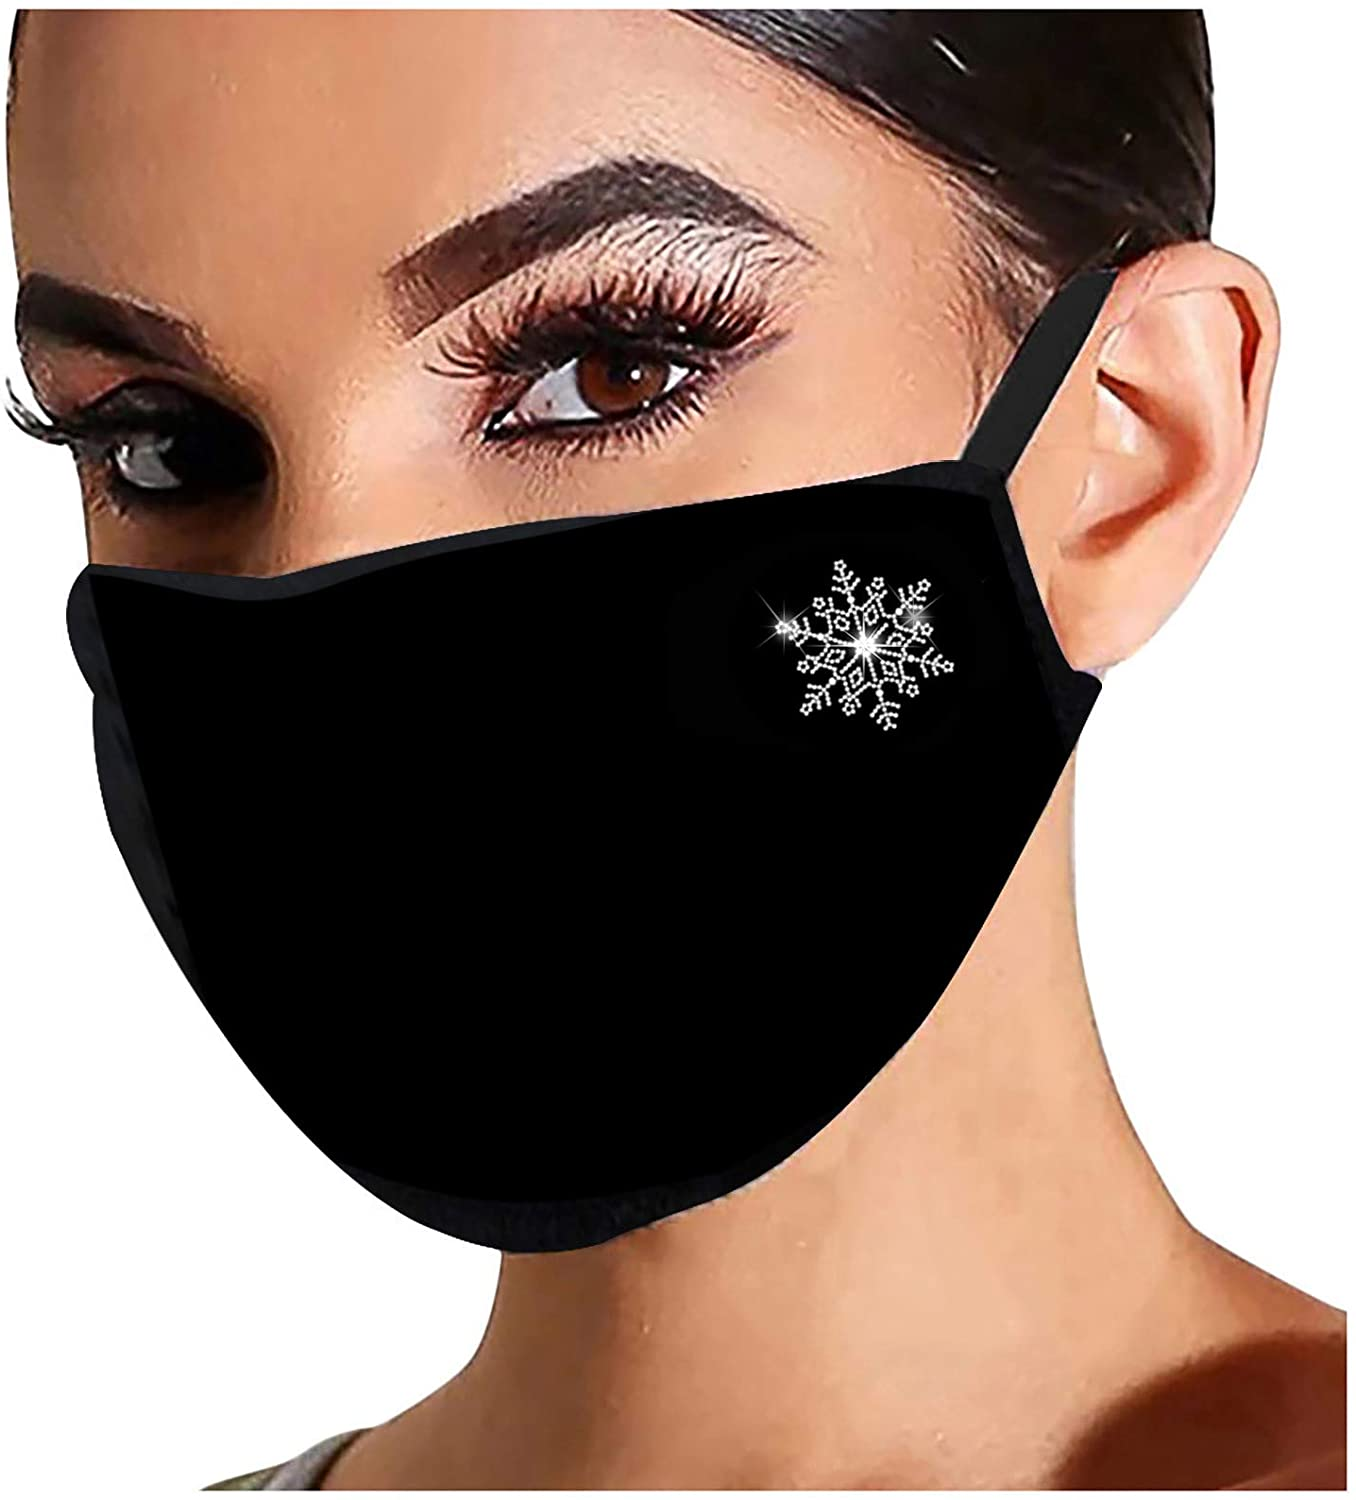 AIHOU Face Masks Reusable Washable Cloth Face Mask Adult Breathable Comfortable Cotton Fabric Mouth Cover Masks Rhinestone Christmas Decorations Party mask